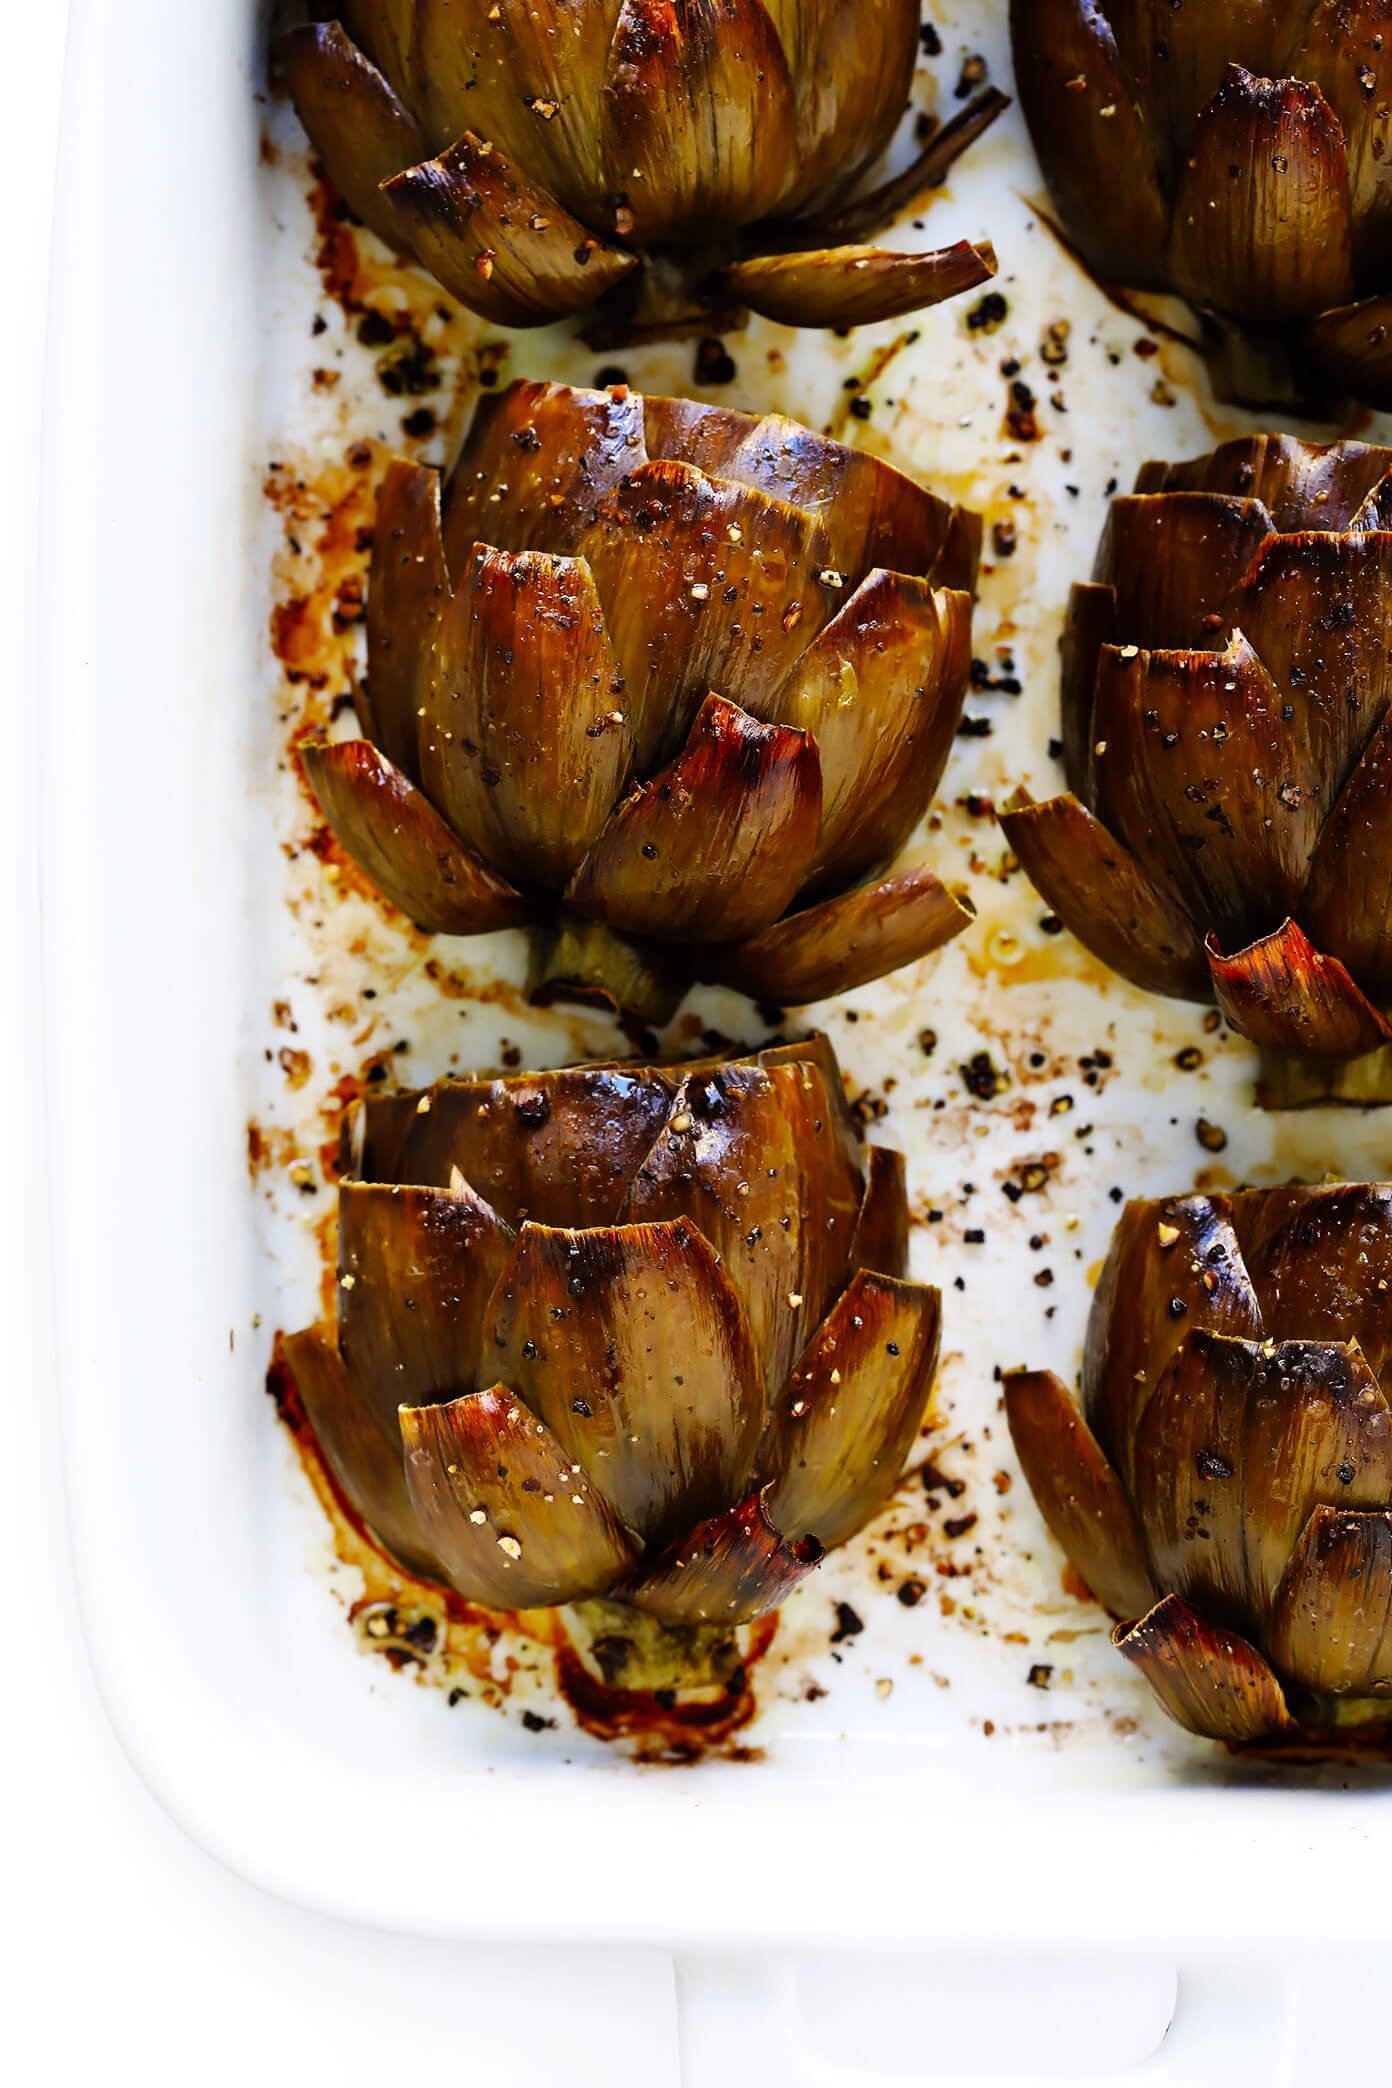 The Most Amazing Roasted Artichokes Recipe